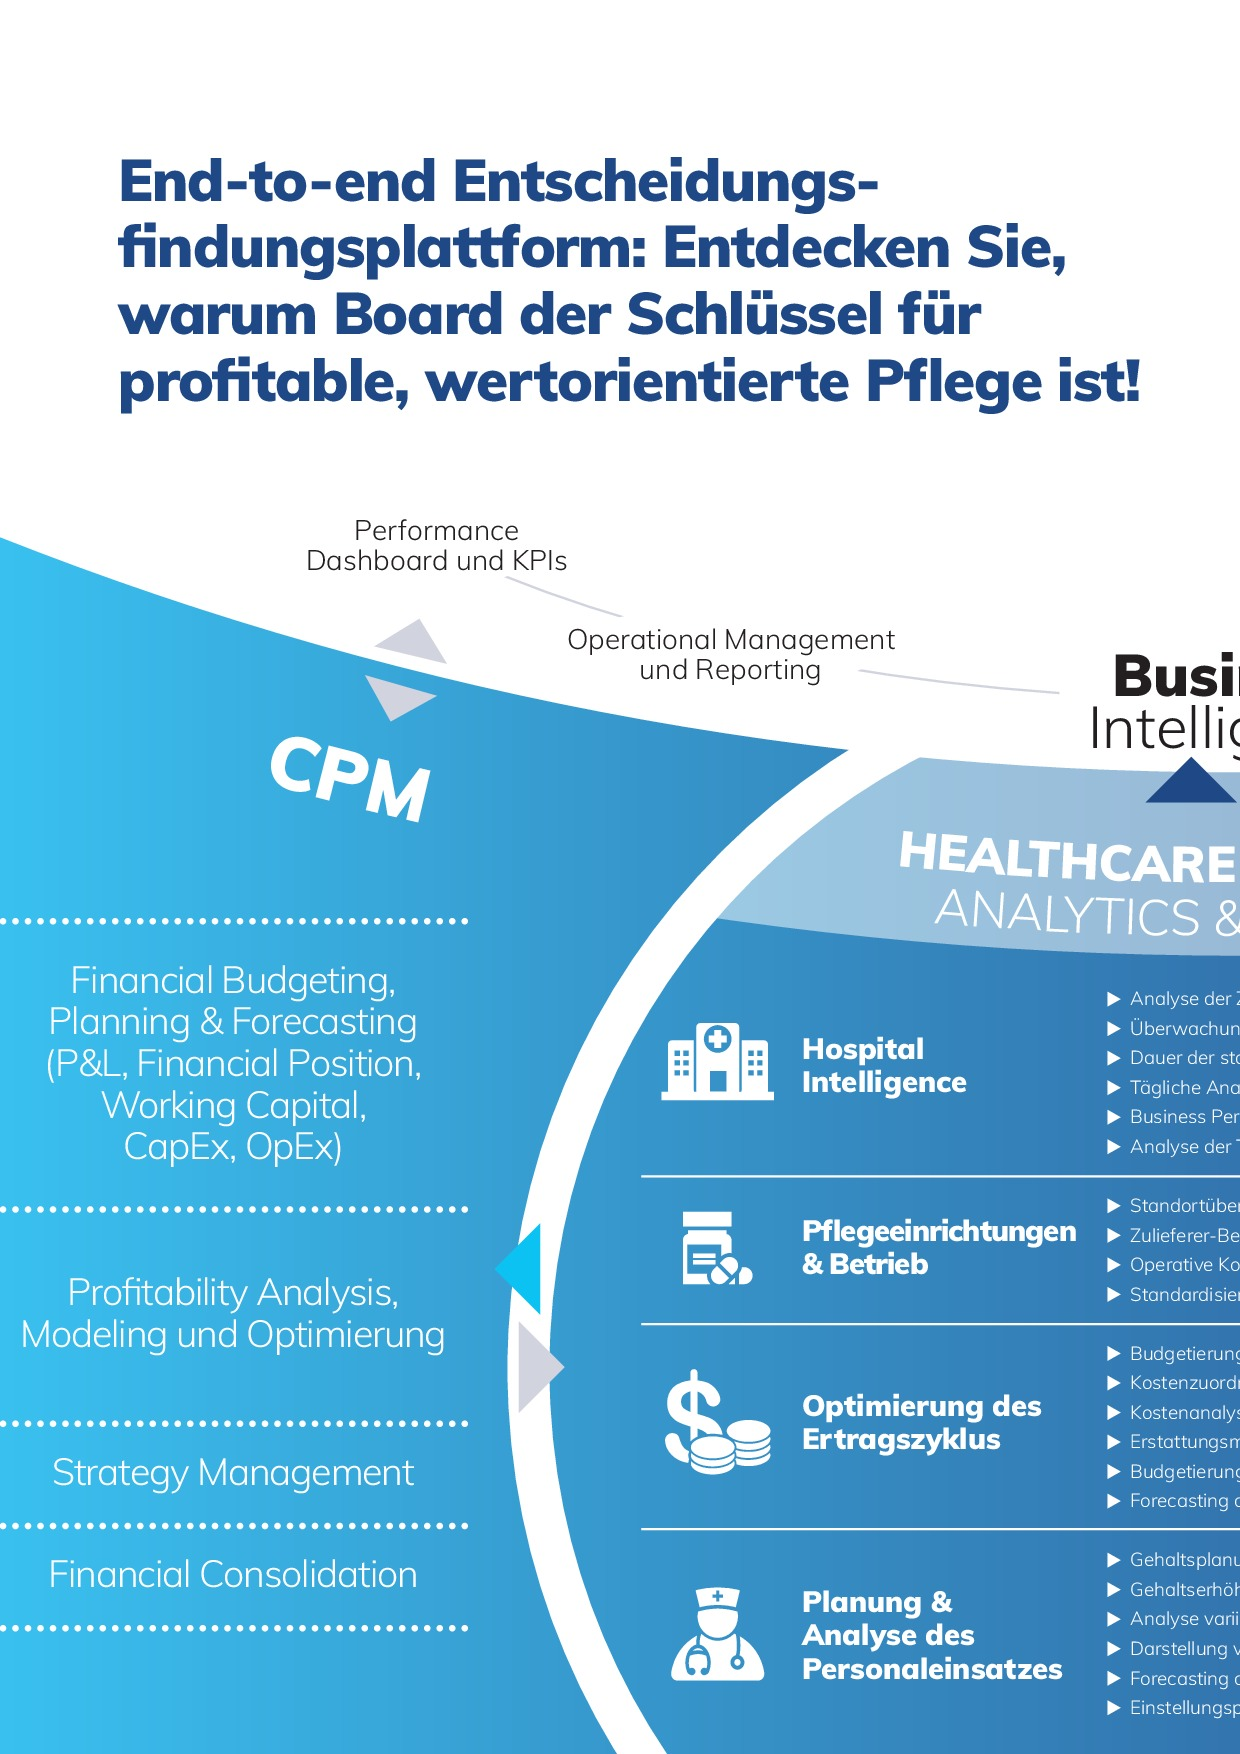 Healthcare Enterprise Analytics, Planning und Forecasting | Thumbnail | Page 6